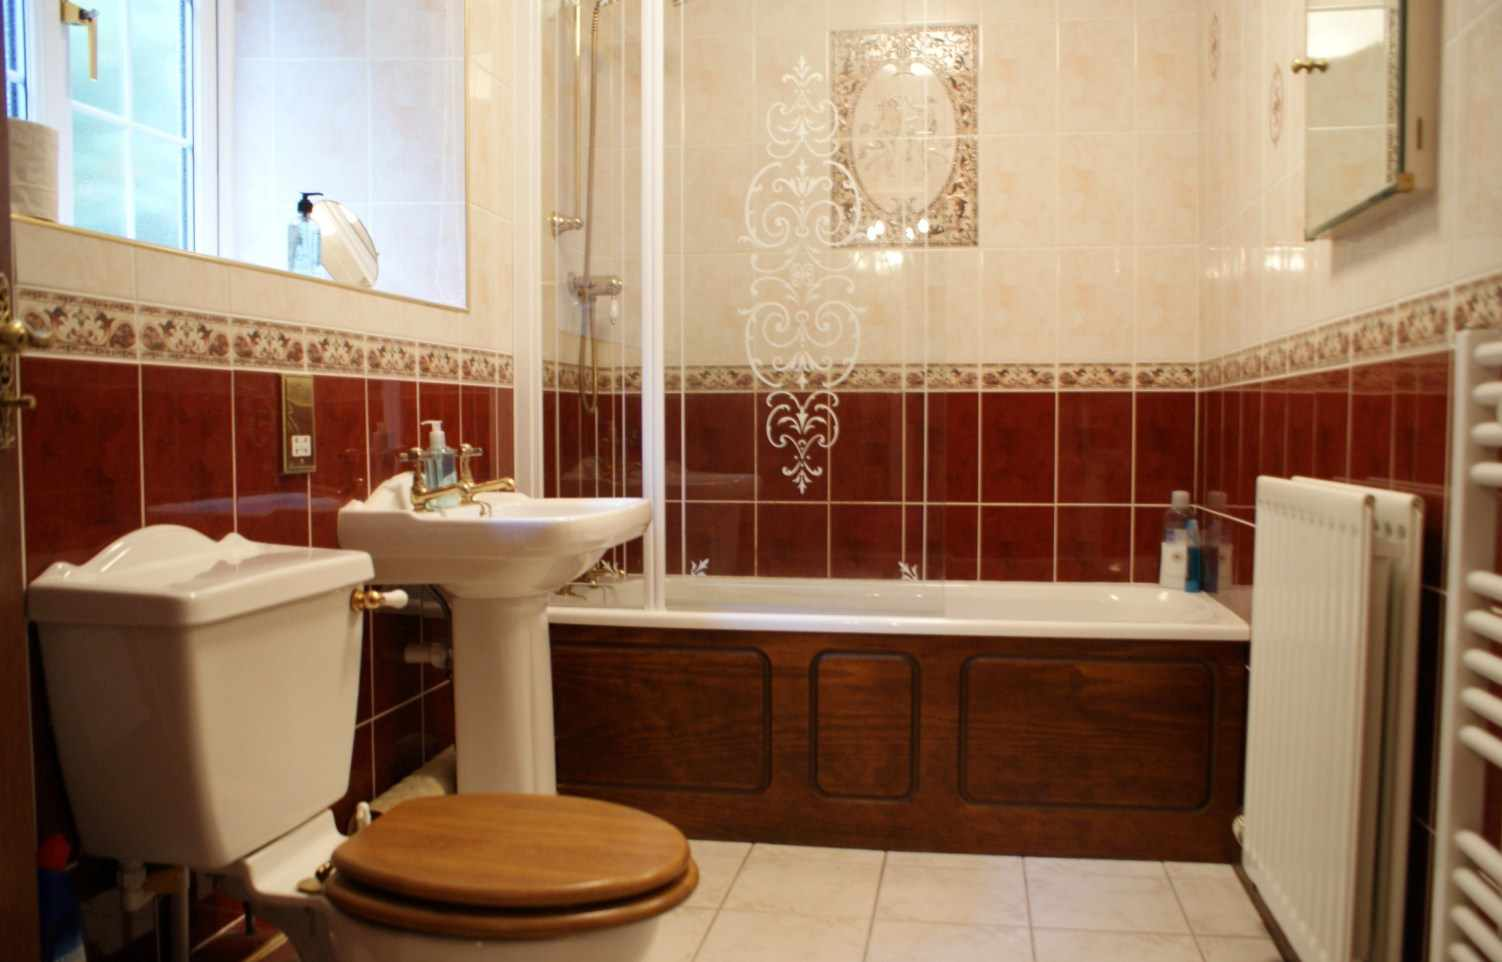 retro-bathroom-tile-design-ideas